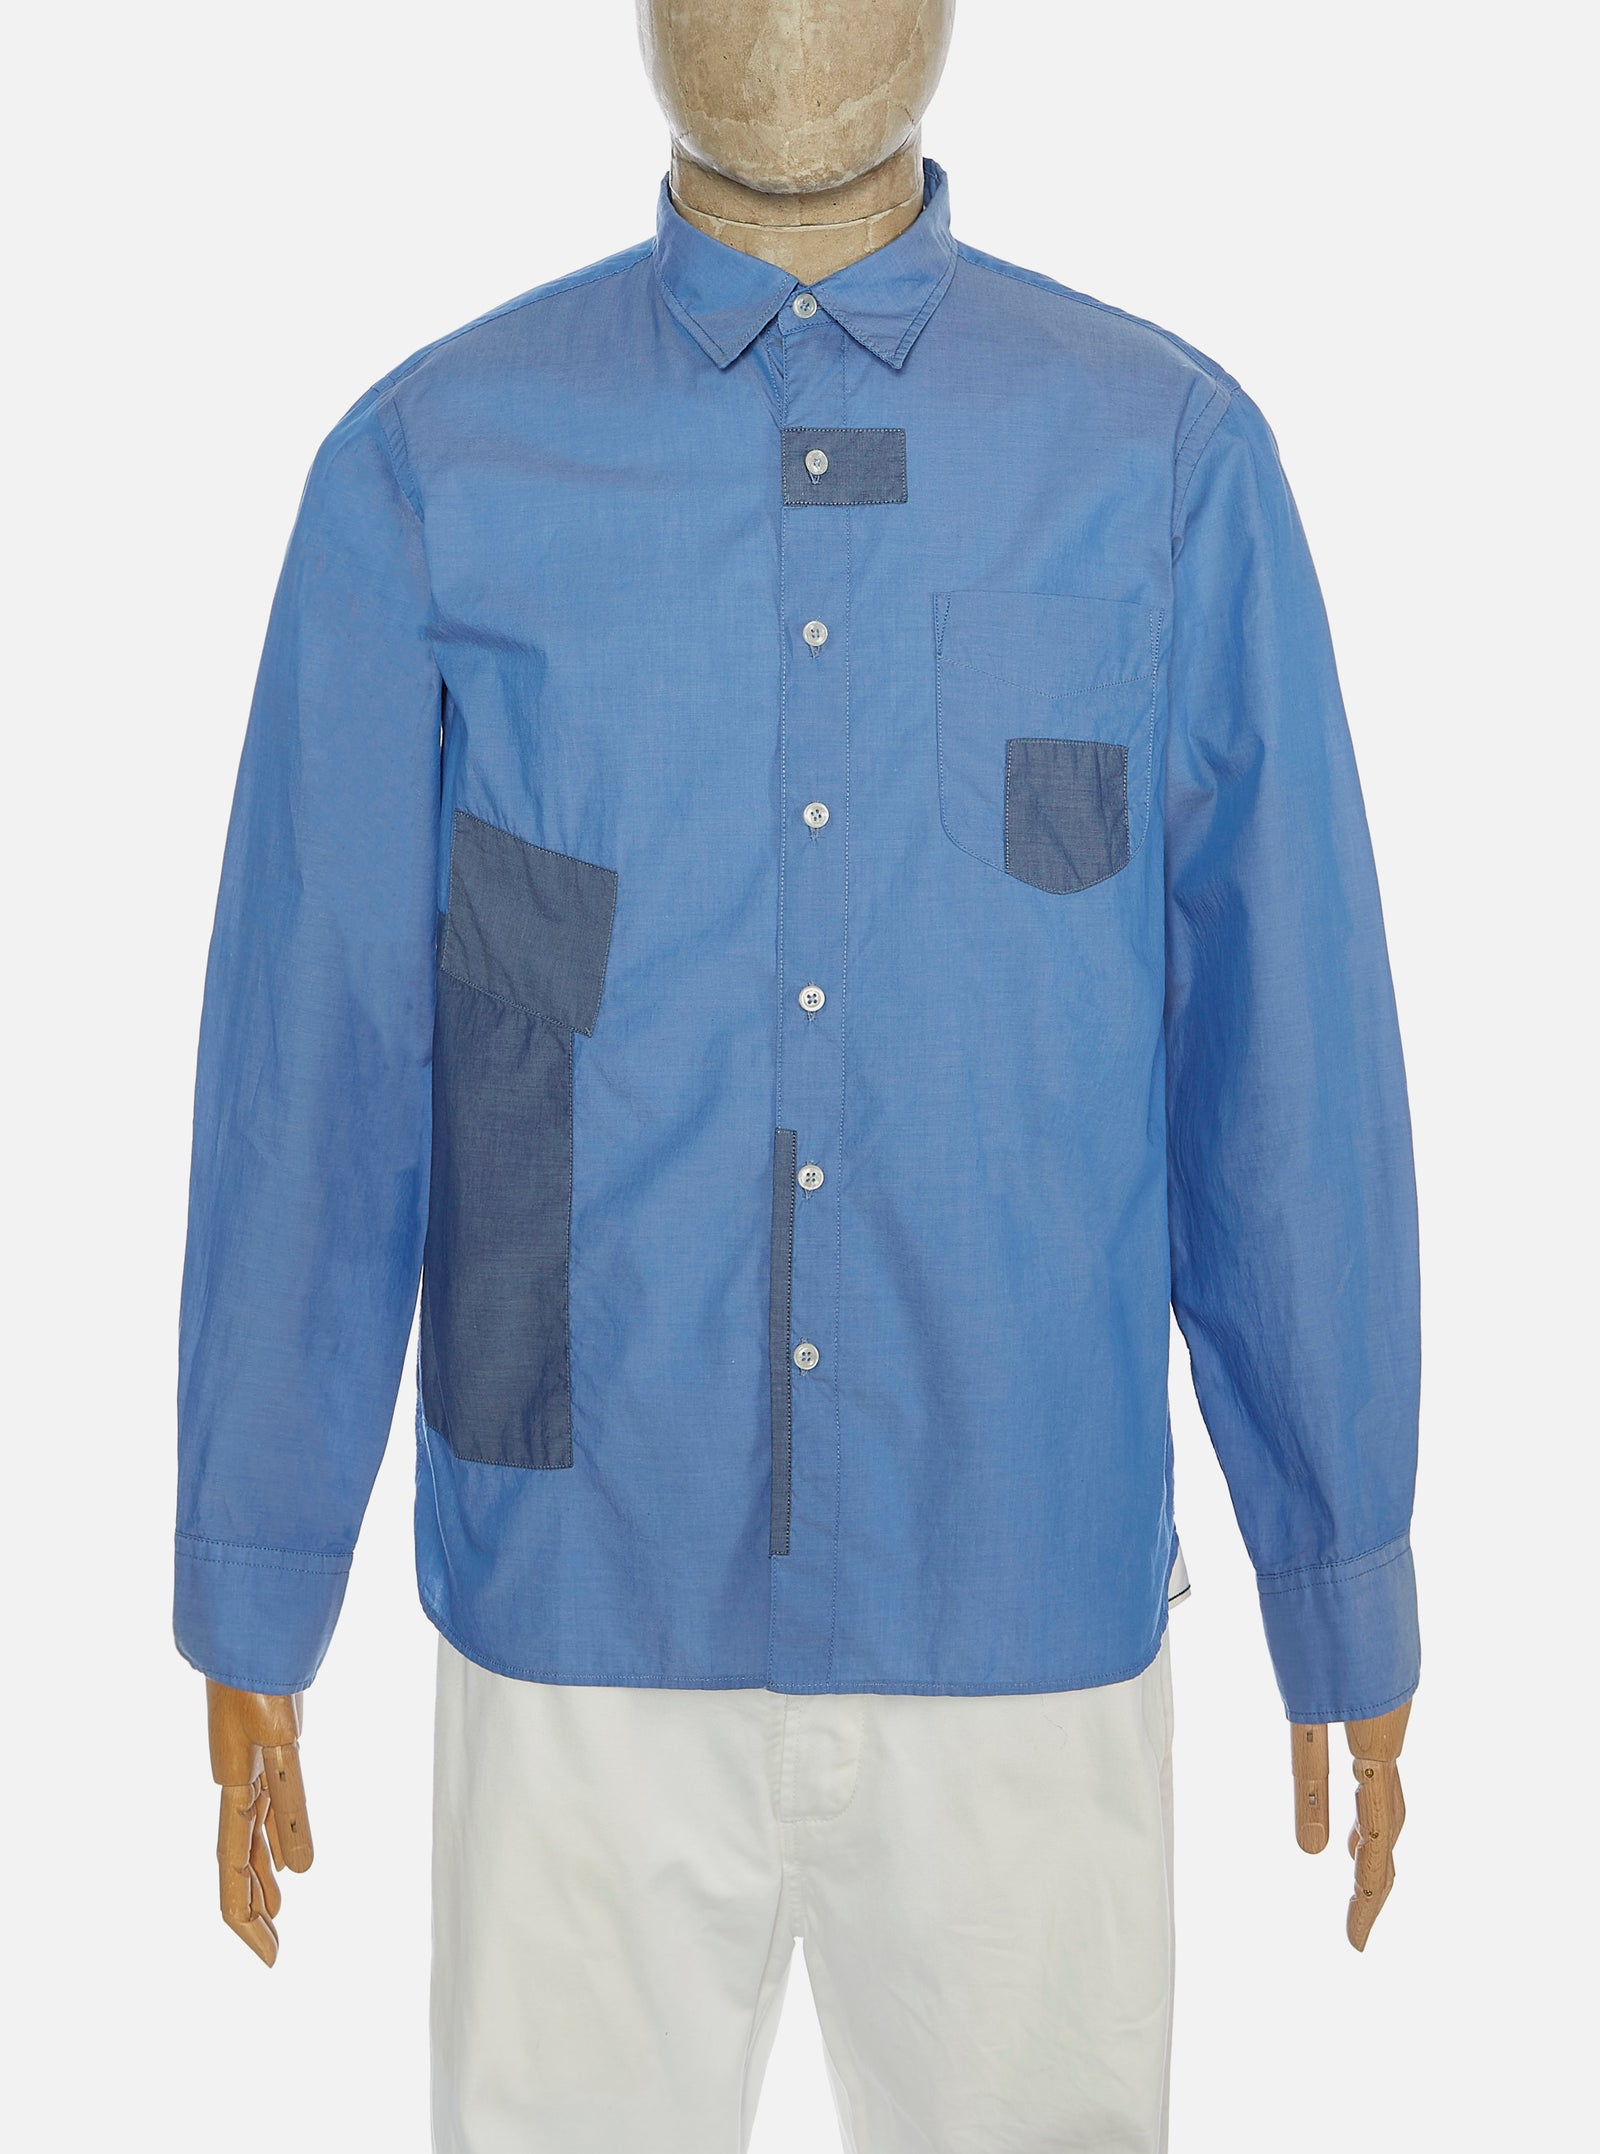 Universal Works Patched Shirt in Mixed Indigo Fine Chambray